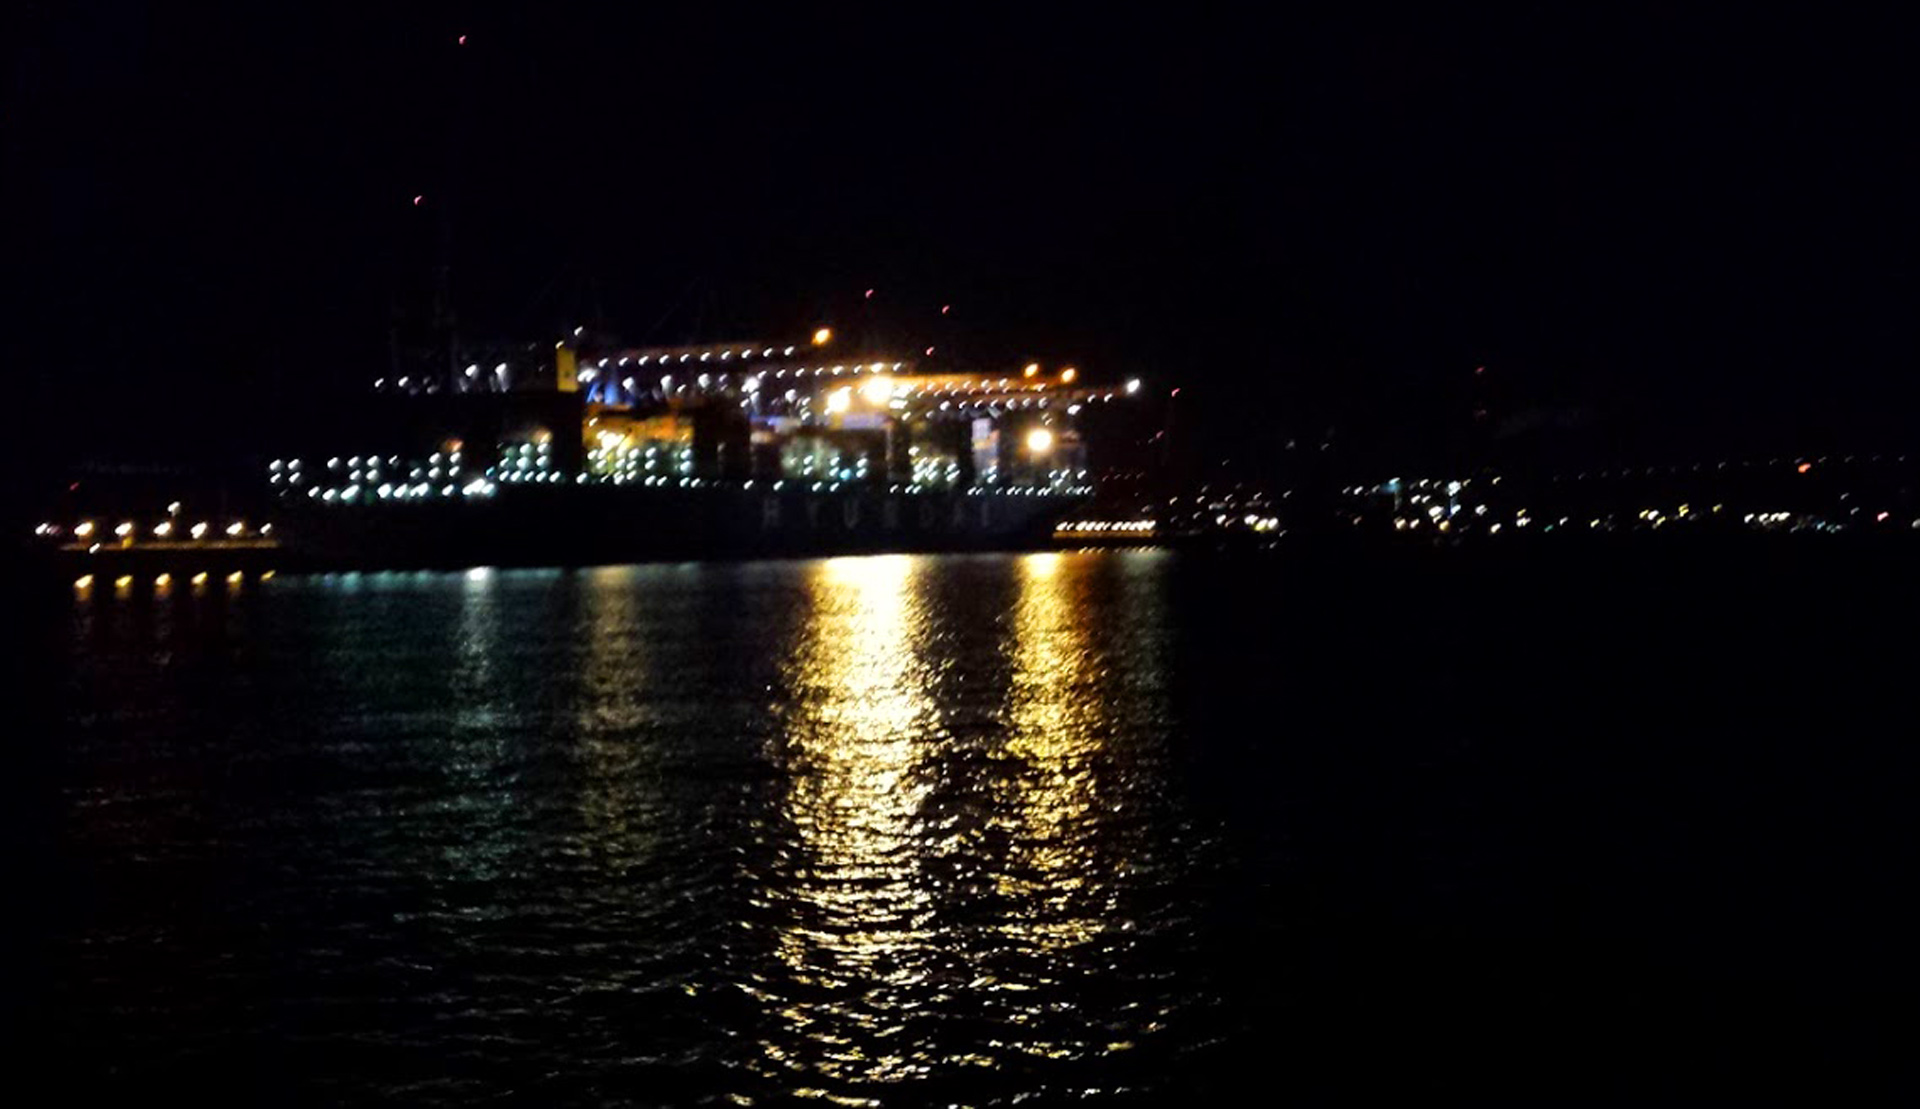 Steering my way through Hamburg port at night: Thank god I now know which leading lights to home on to.